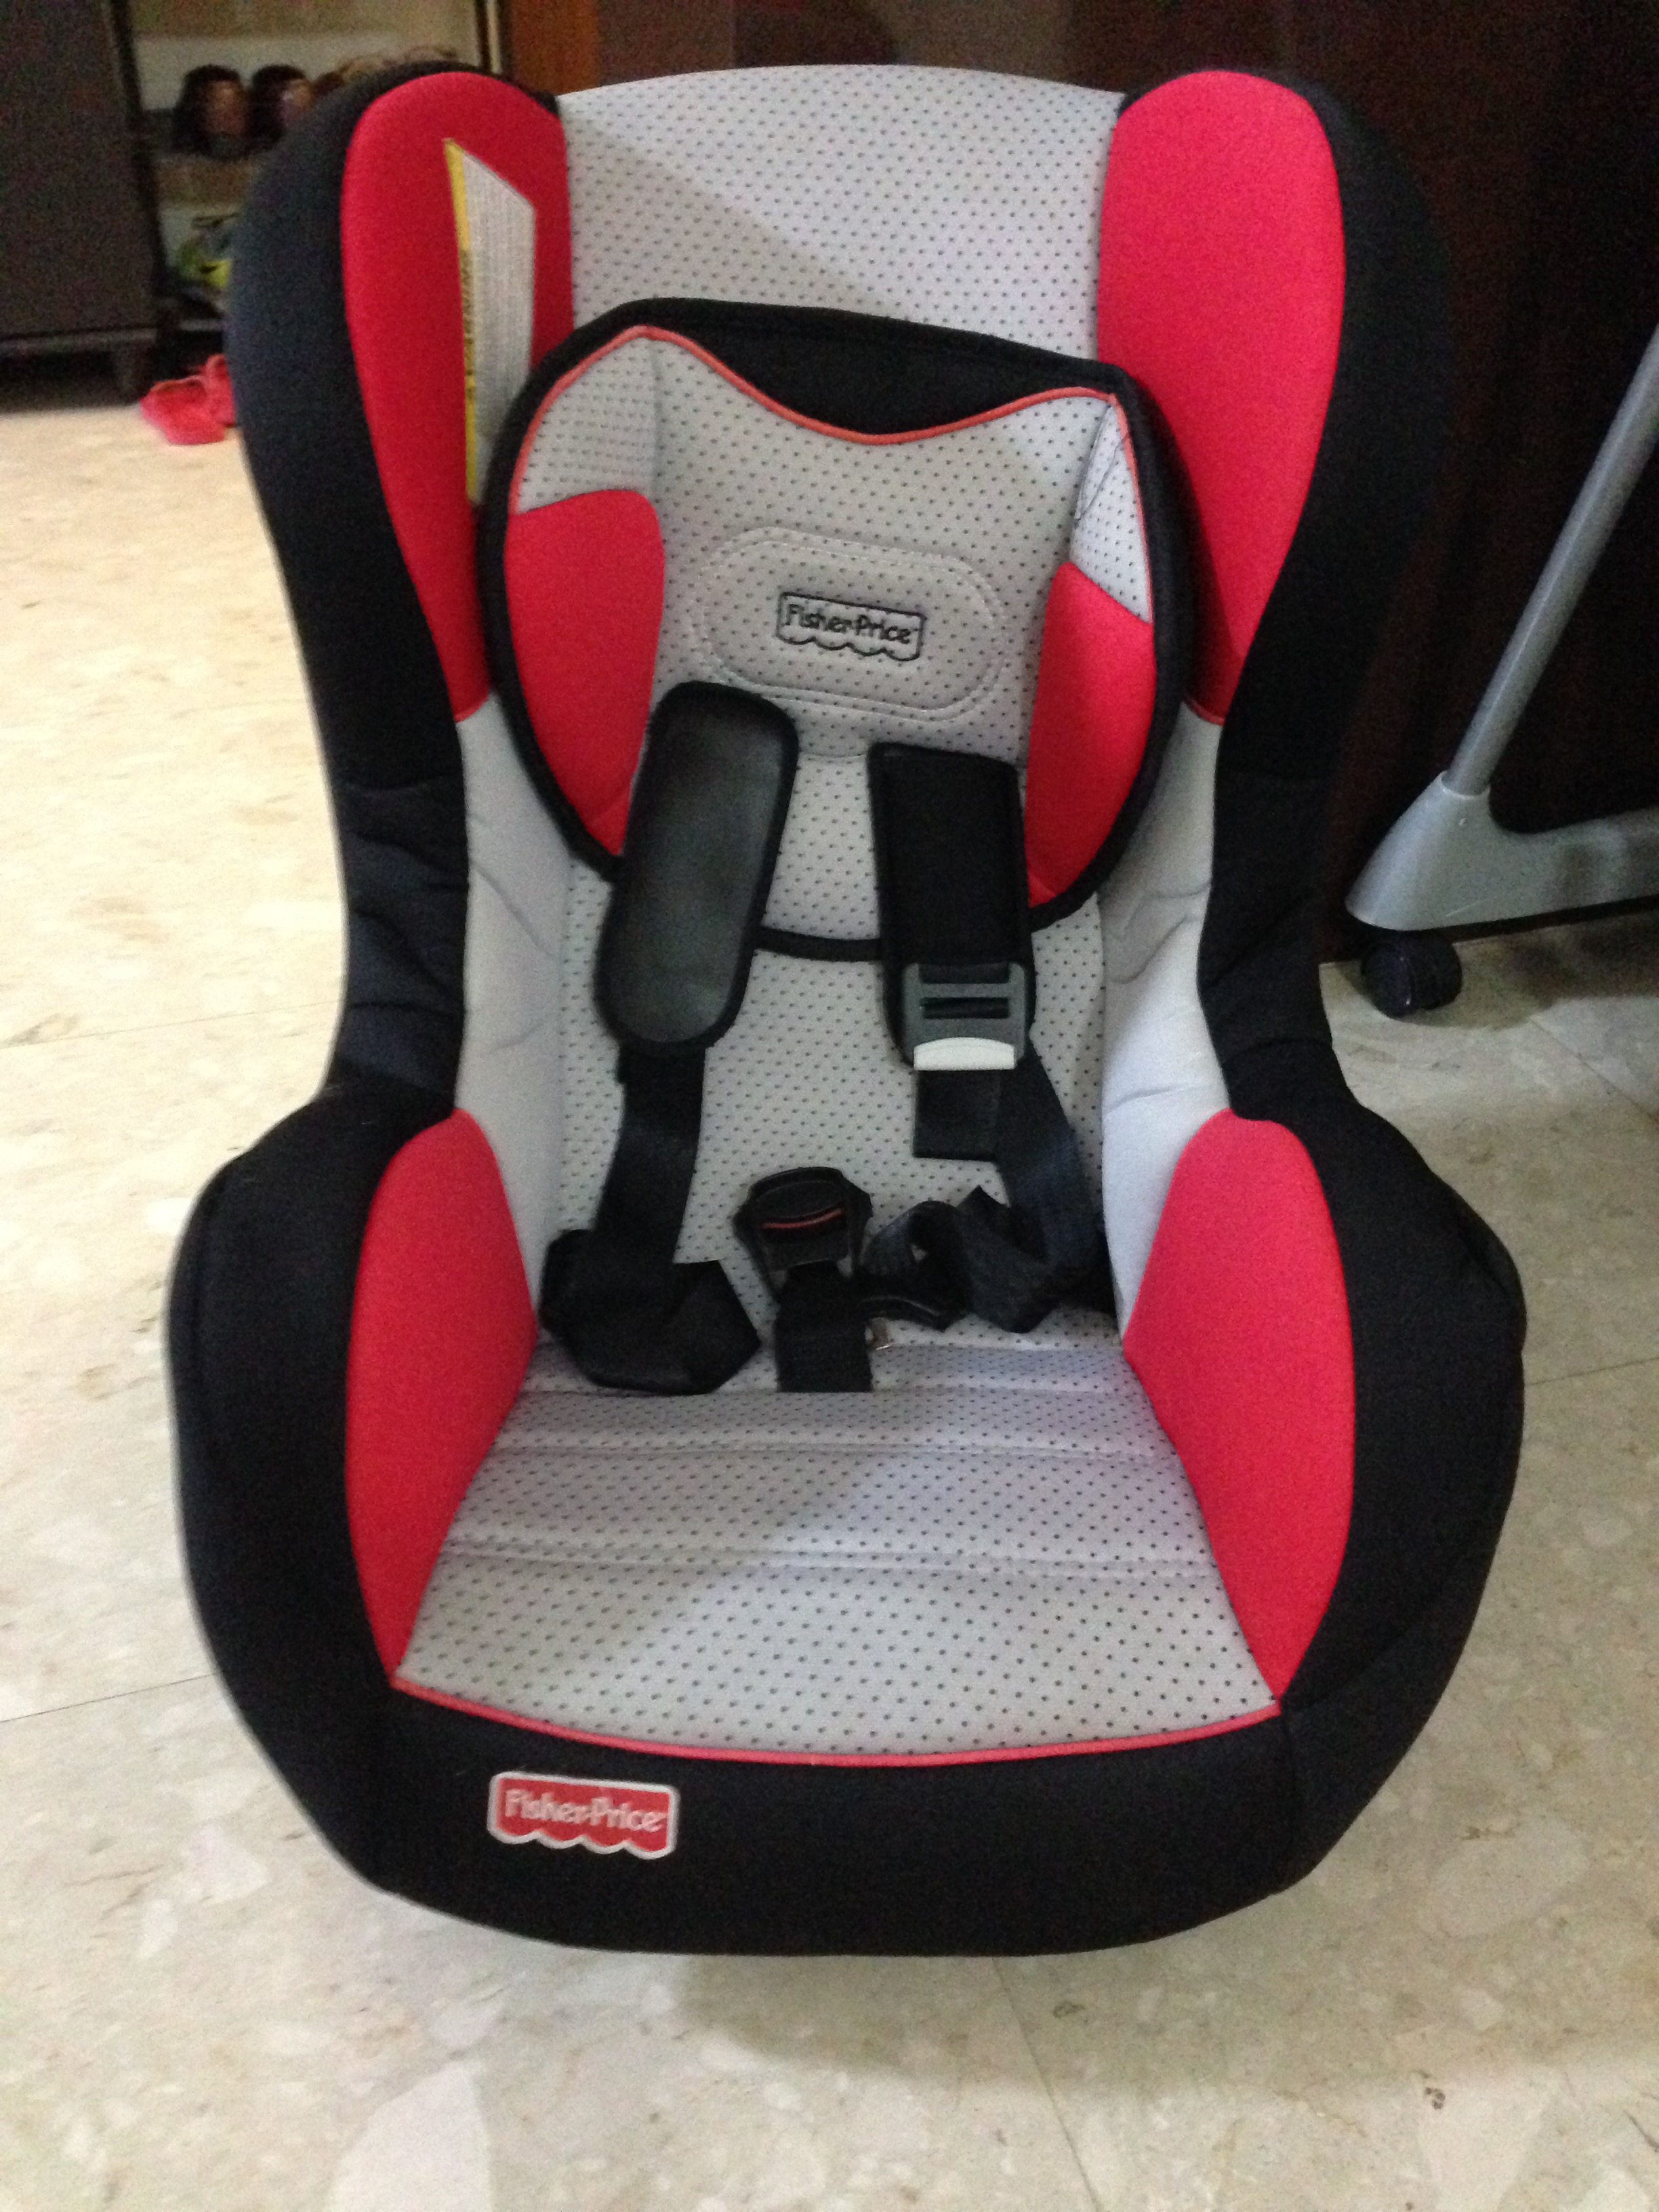 Preloved Fisherprice Car Seat Letting Go At 20 In Good Condition Suitable For Toddlers Children Weight Up To 18kg